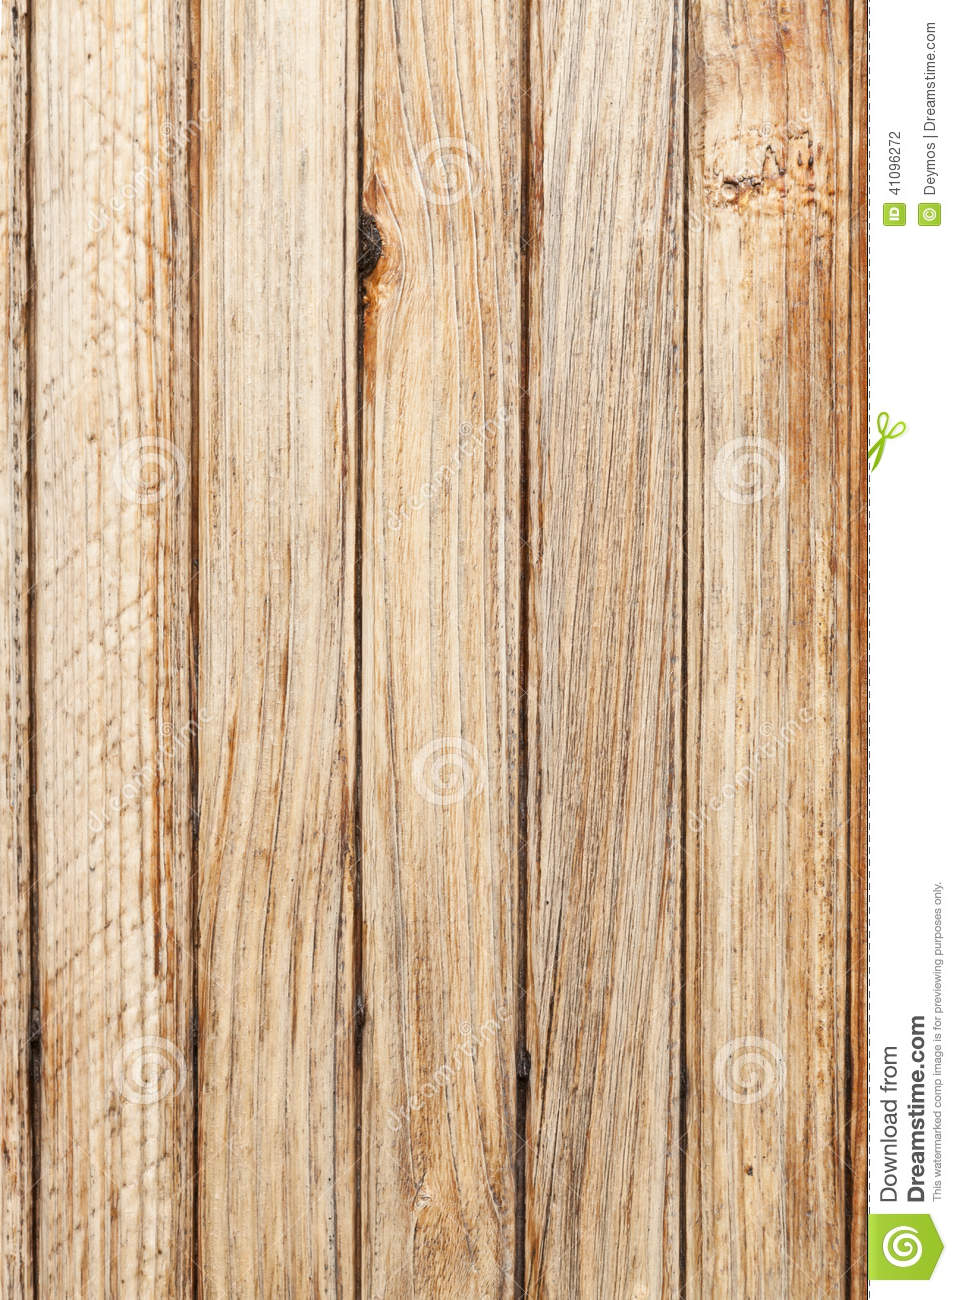 Wooden Wall Boards : Wood wall surface wooden texture vertical boards stock